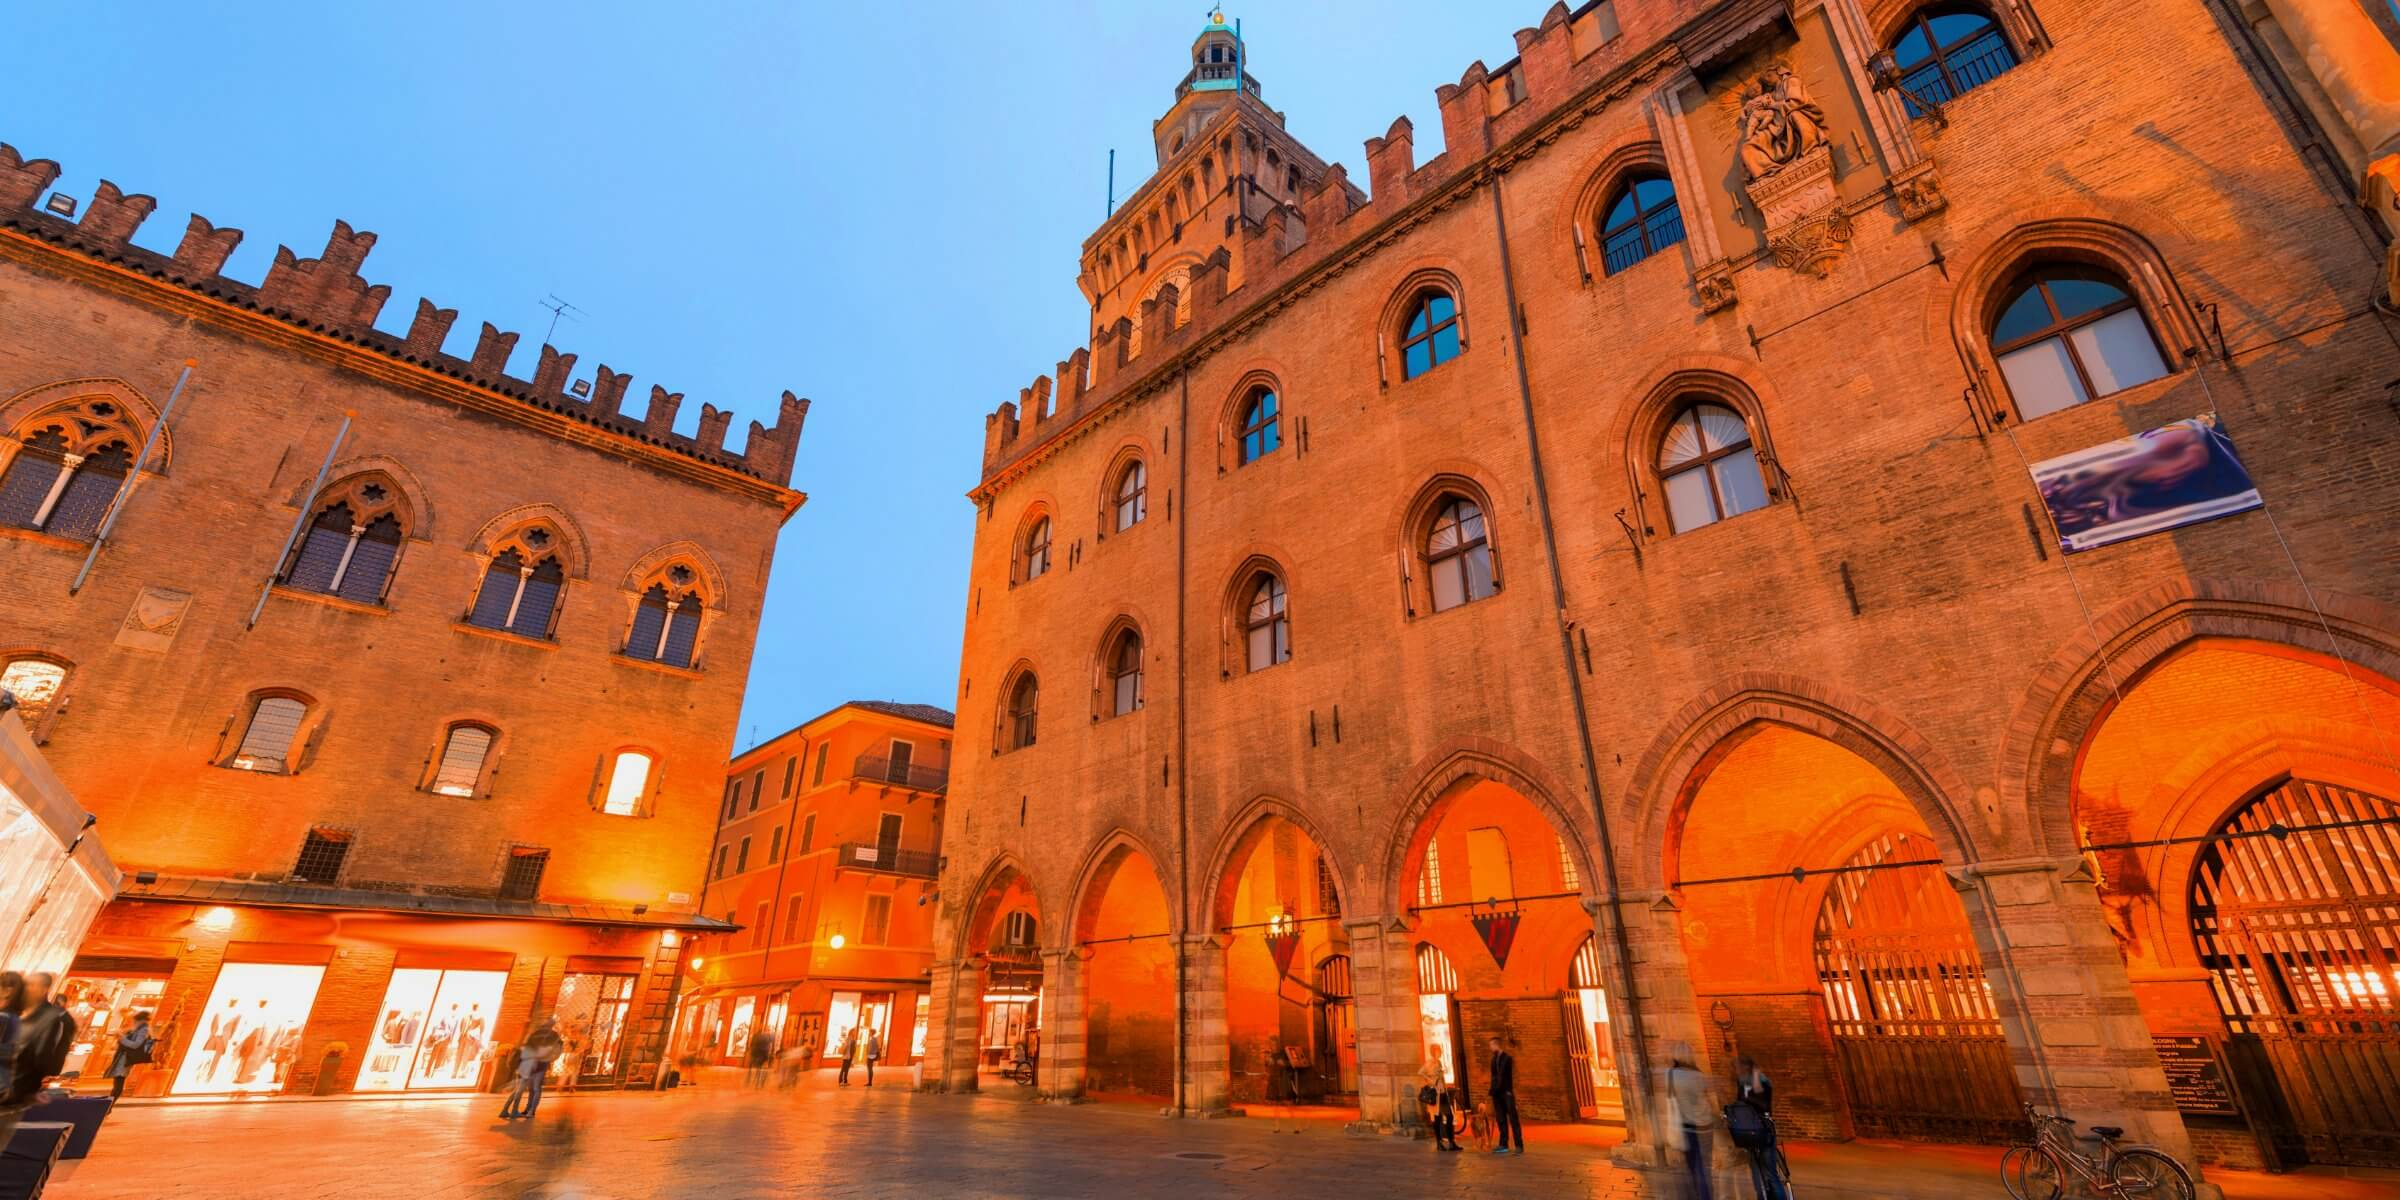 Bologna will suprise you for its beautiness, a preserved and vibrant historical center full of shops, cafes